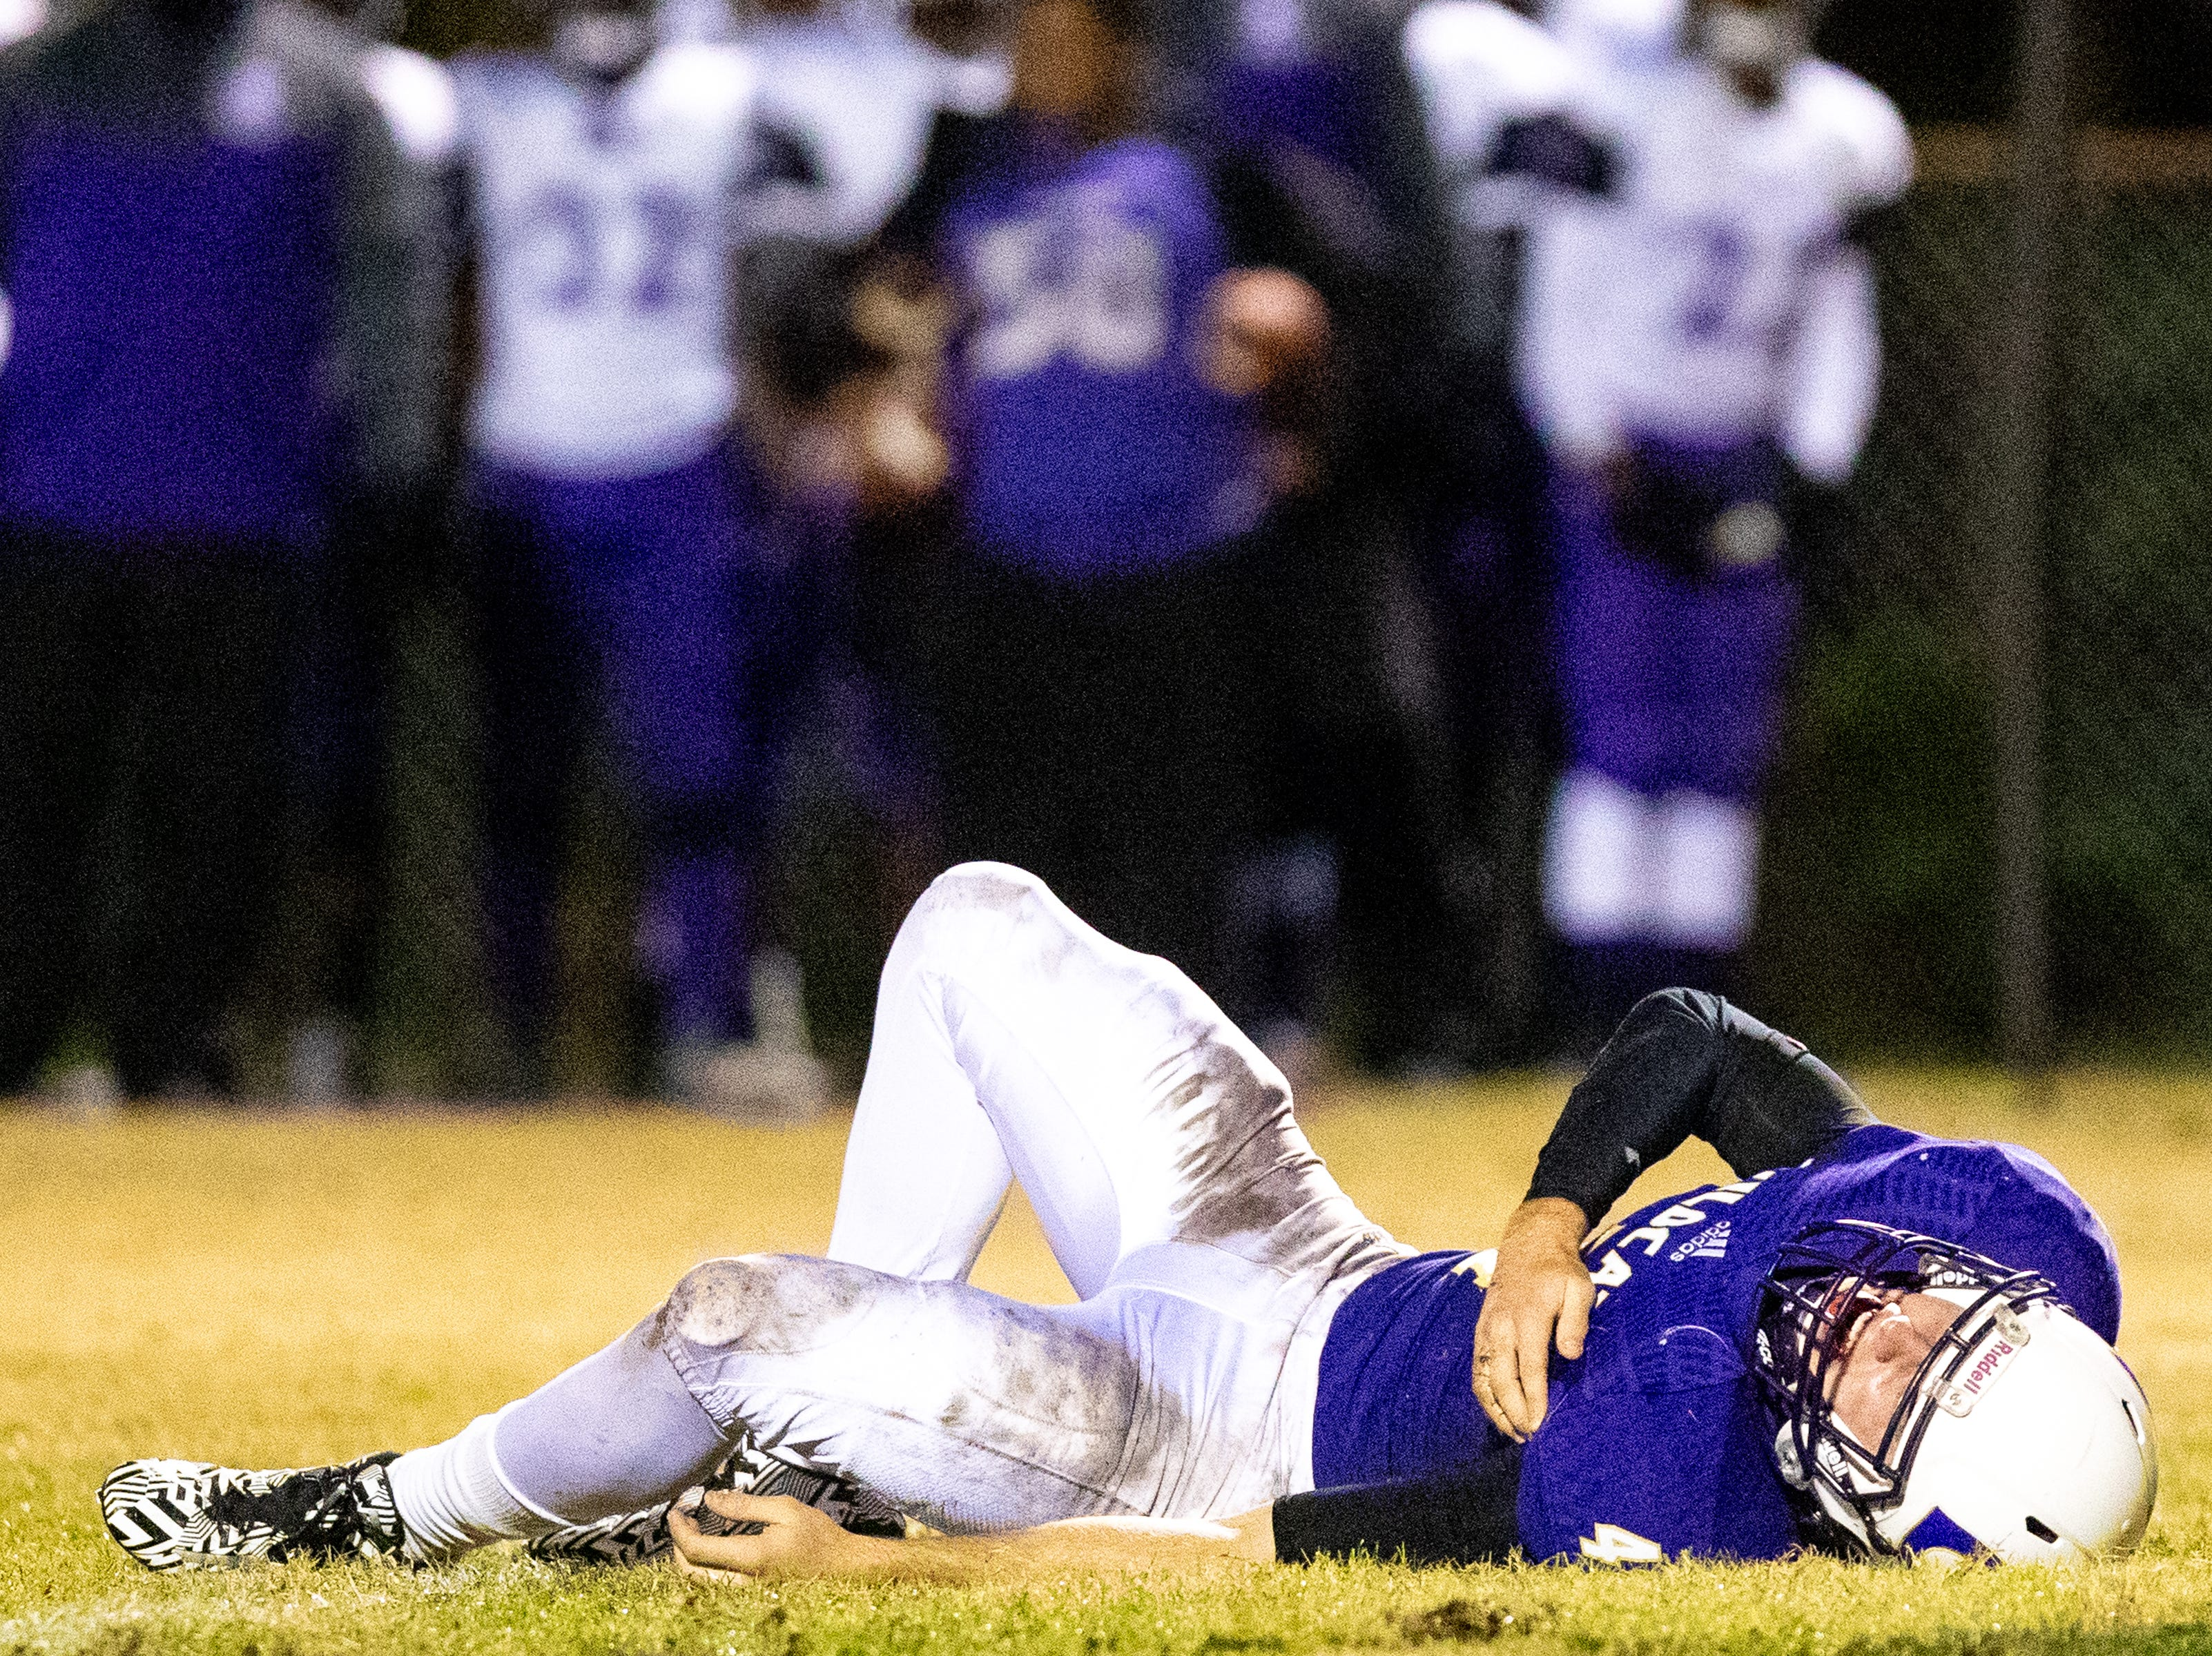 Starting quarterback Ford Cooper (4) of Clarksville High lays on the ground after an injury to his shoulder during the first half at Clarksville High Friday, Nov. 2, 2018, in Clarksville, Tenn.